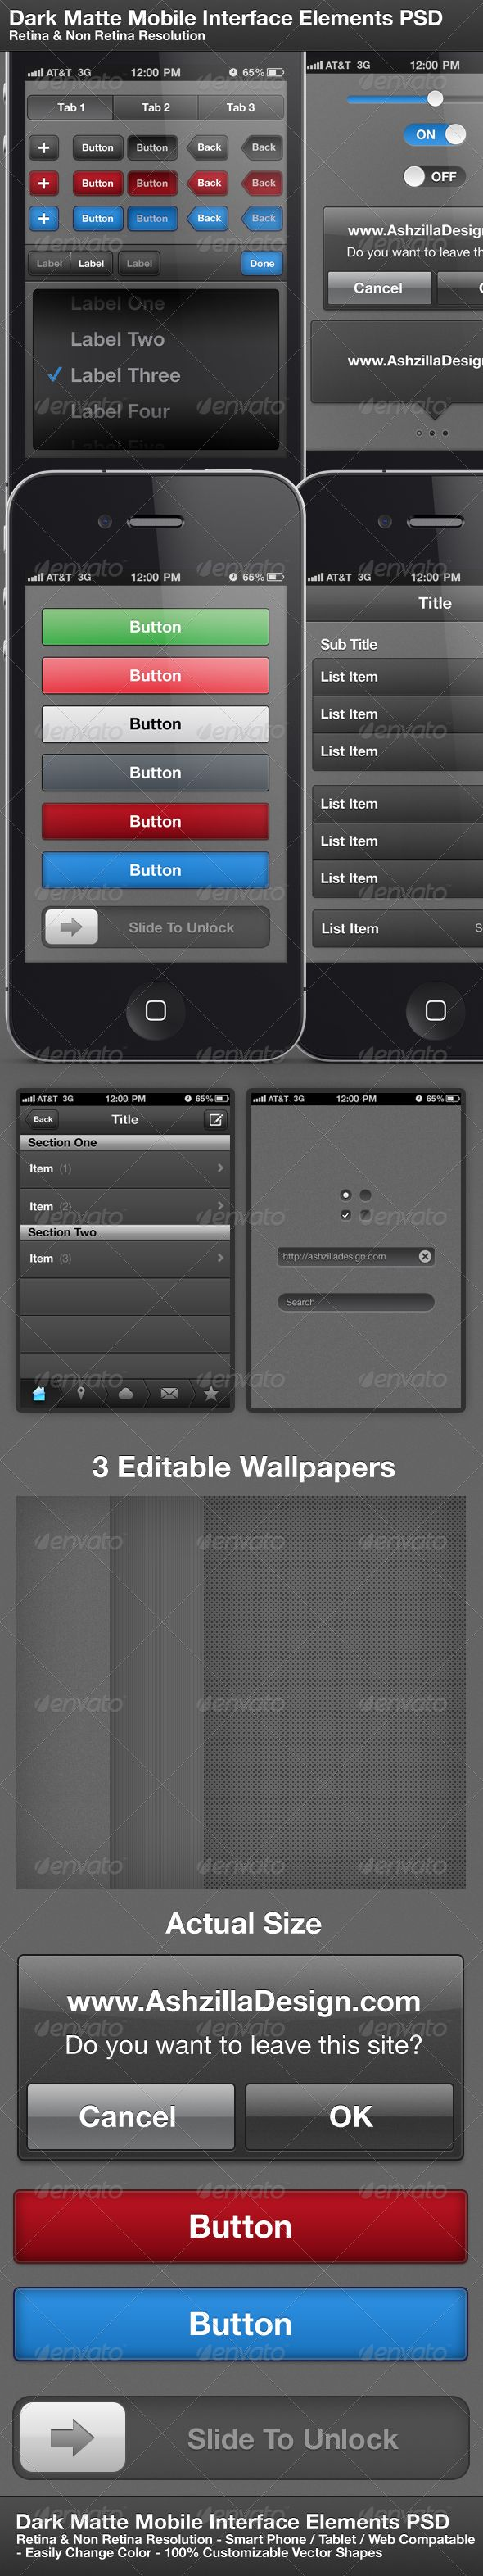 Dark Matte Mobile Interface Elements PSD  #GraphicRiver         This retina display ready high resolution PSD is very customisable and well organised. Perfect for Mobile devices or websites.   	 Dark Matte Mobile Interface Elements PSD    - PSD file (Compatible with CS3 , CS4 & CS5 ) - Professional & Clean Design - Easily change color of Elements - Fully customisable vector shapes - Organised layers - Optimised for mobile use but also great for websites - Two resolutions included: Normal…